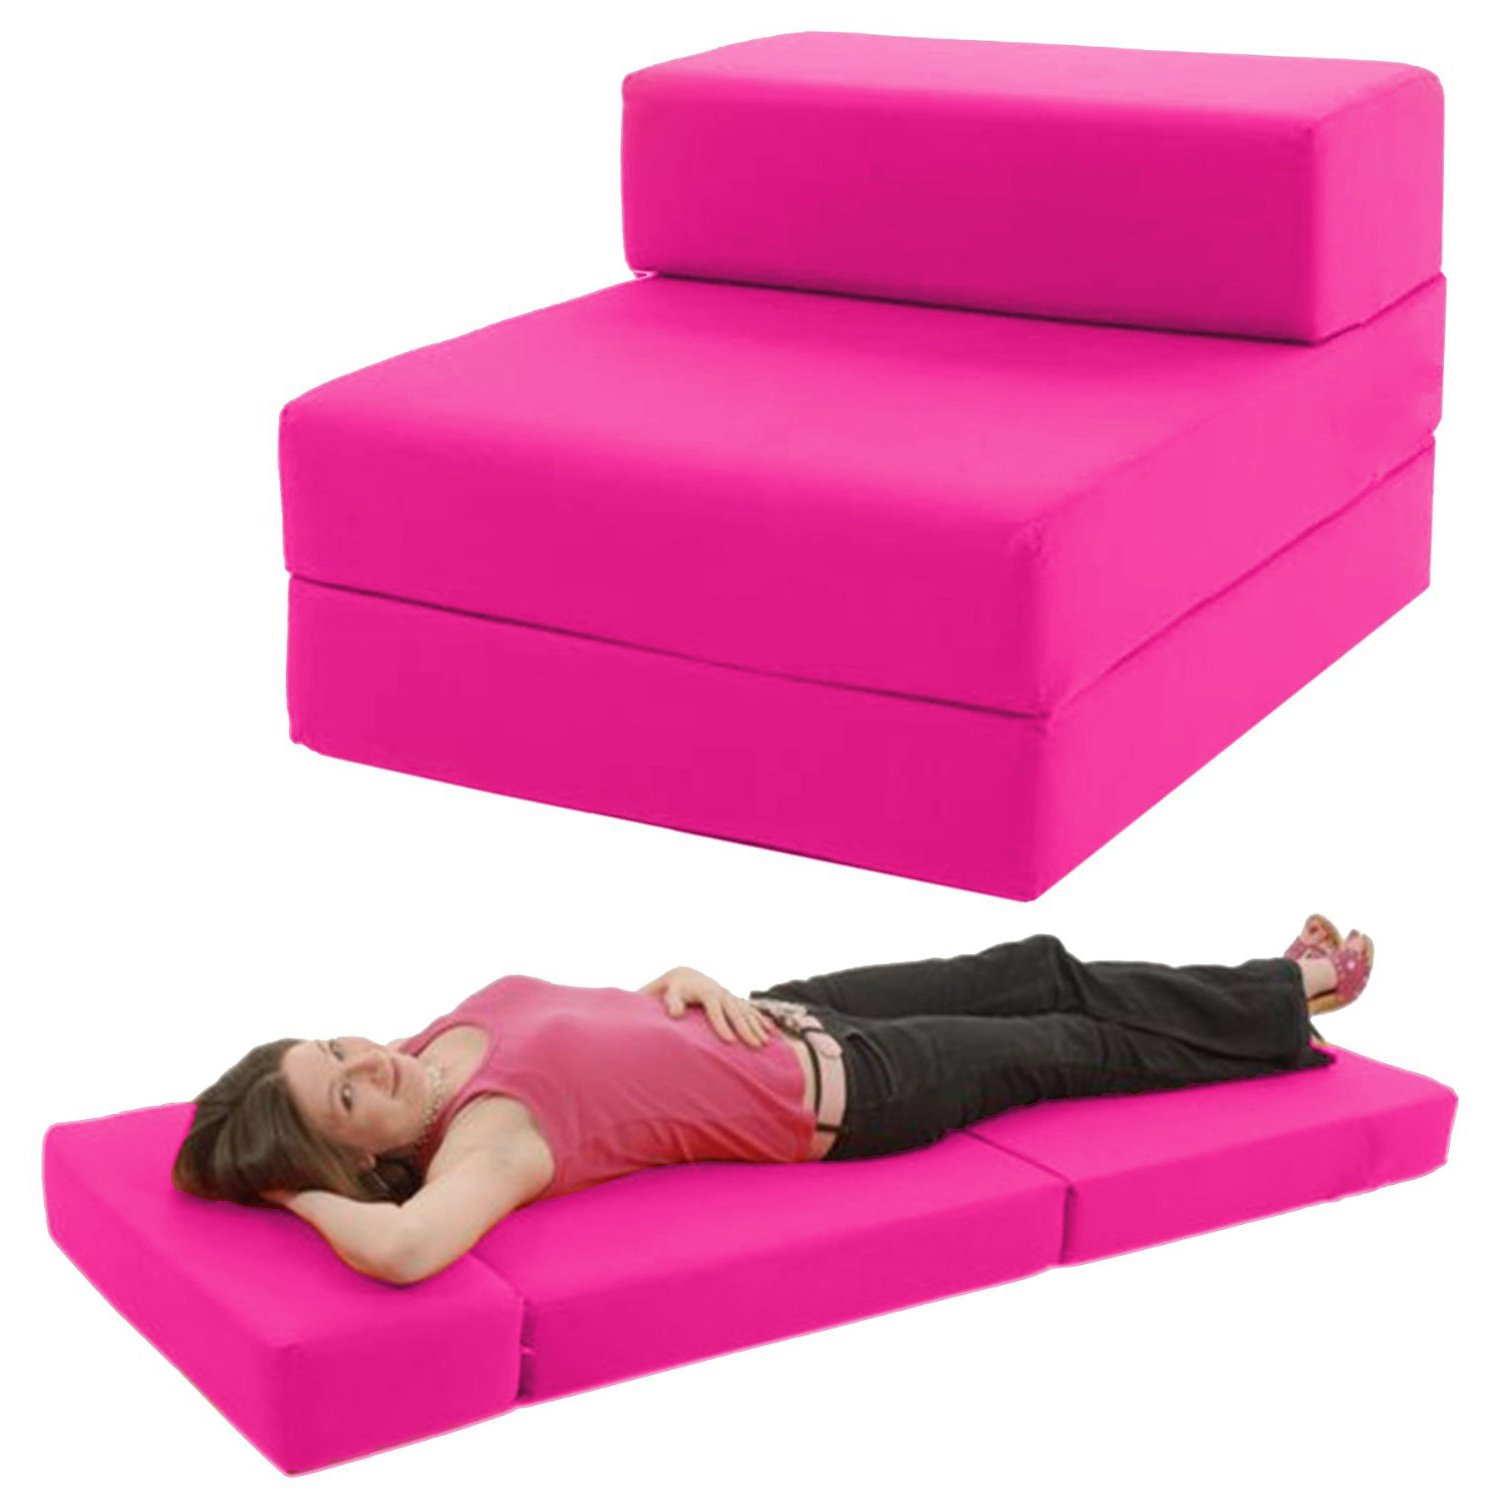 STANDARD CHAIRBED HOT PINK Single Chairbed Chair Z Bed Chairbed